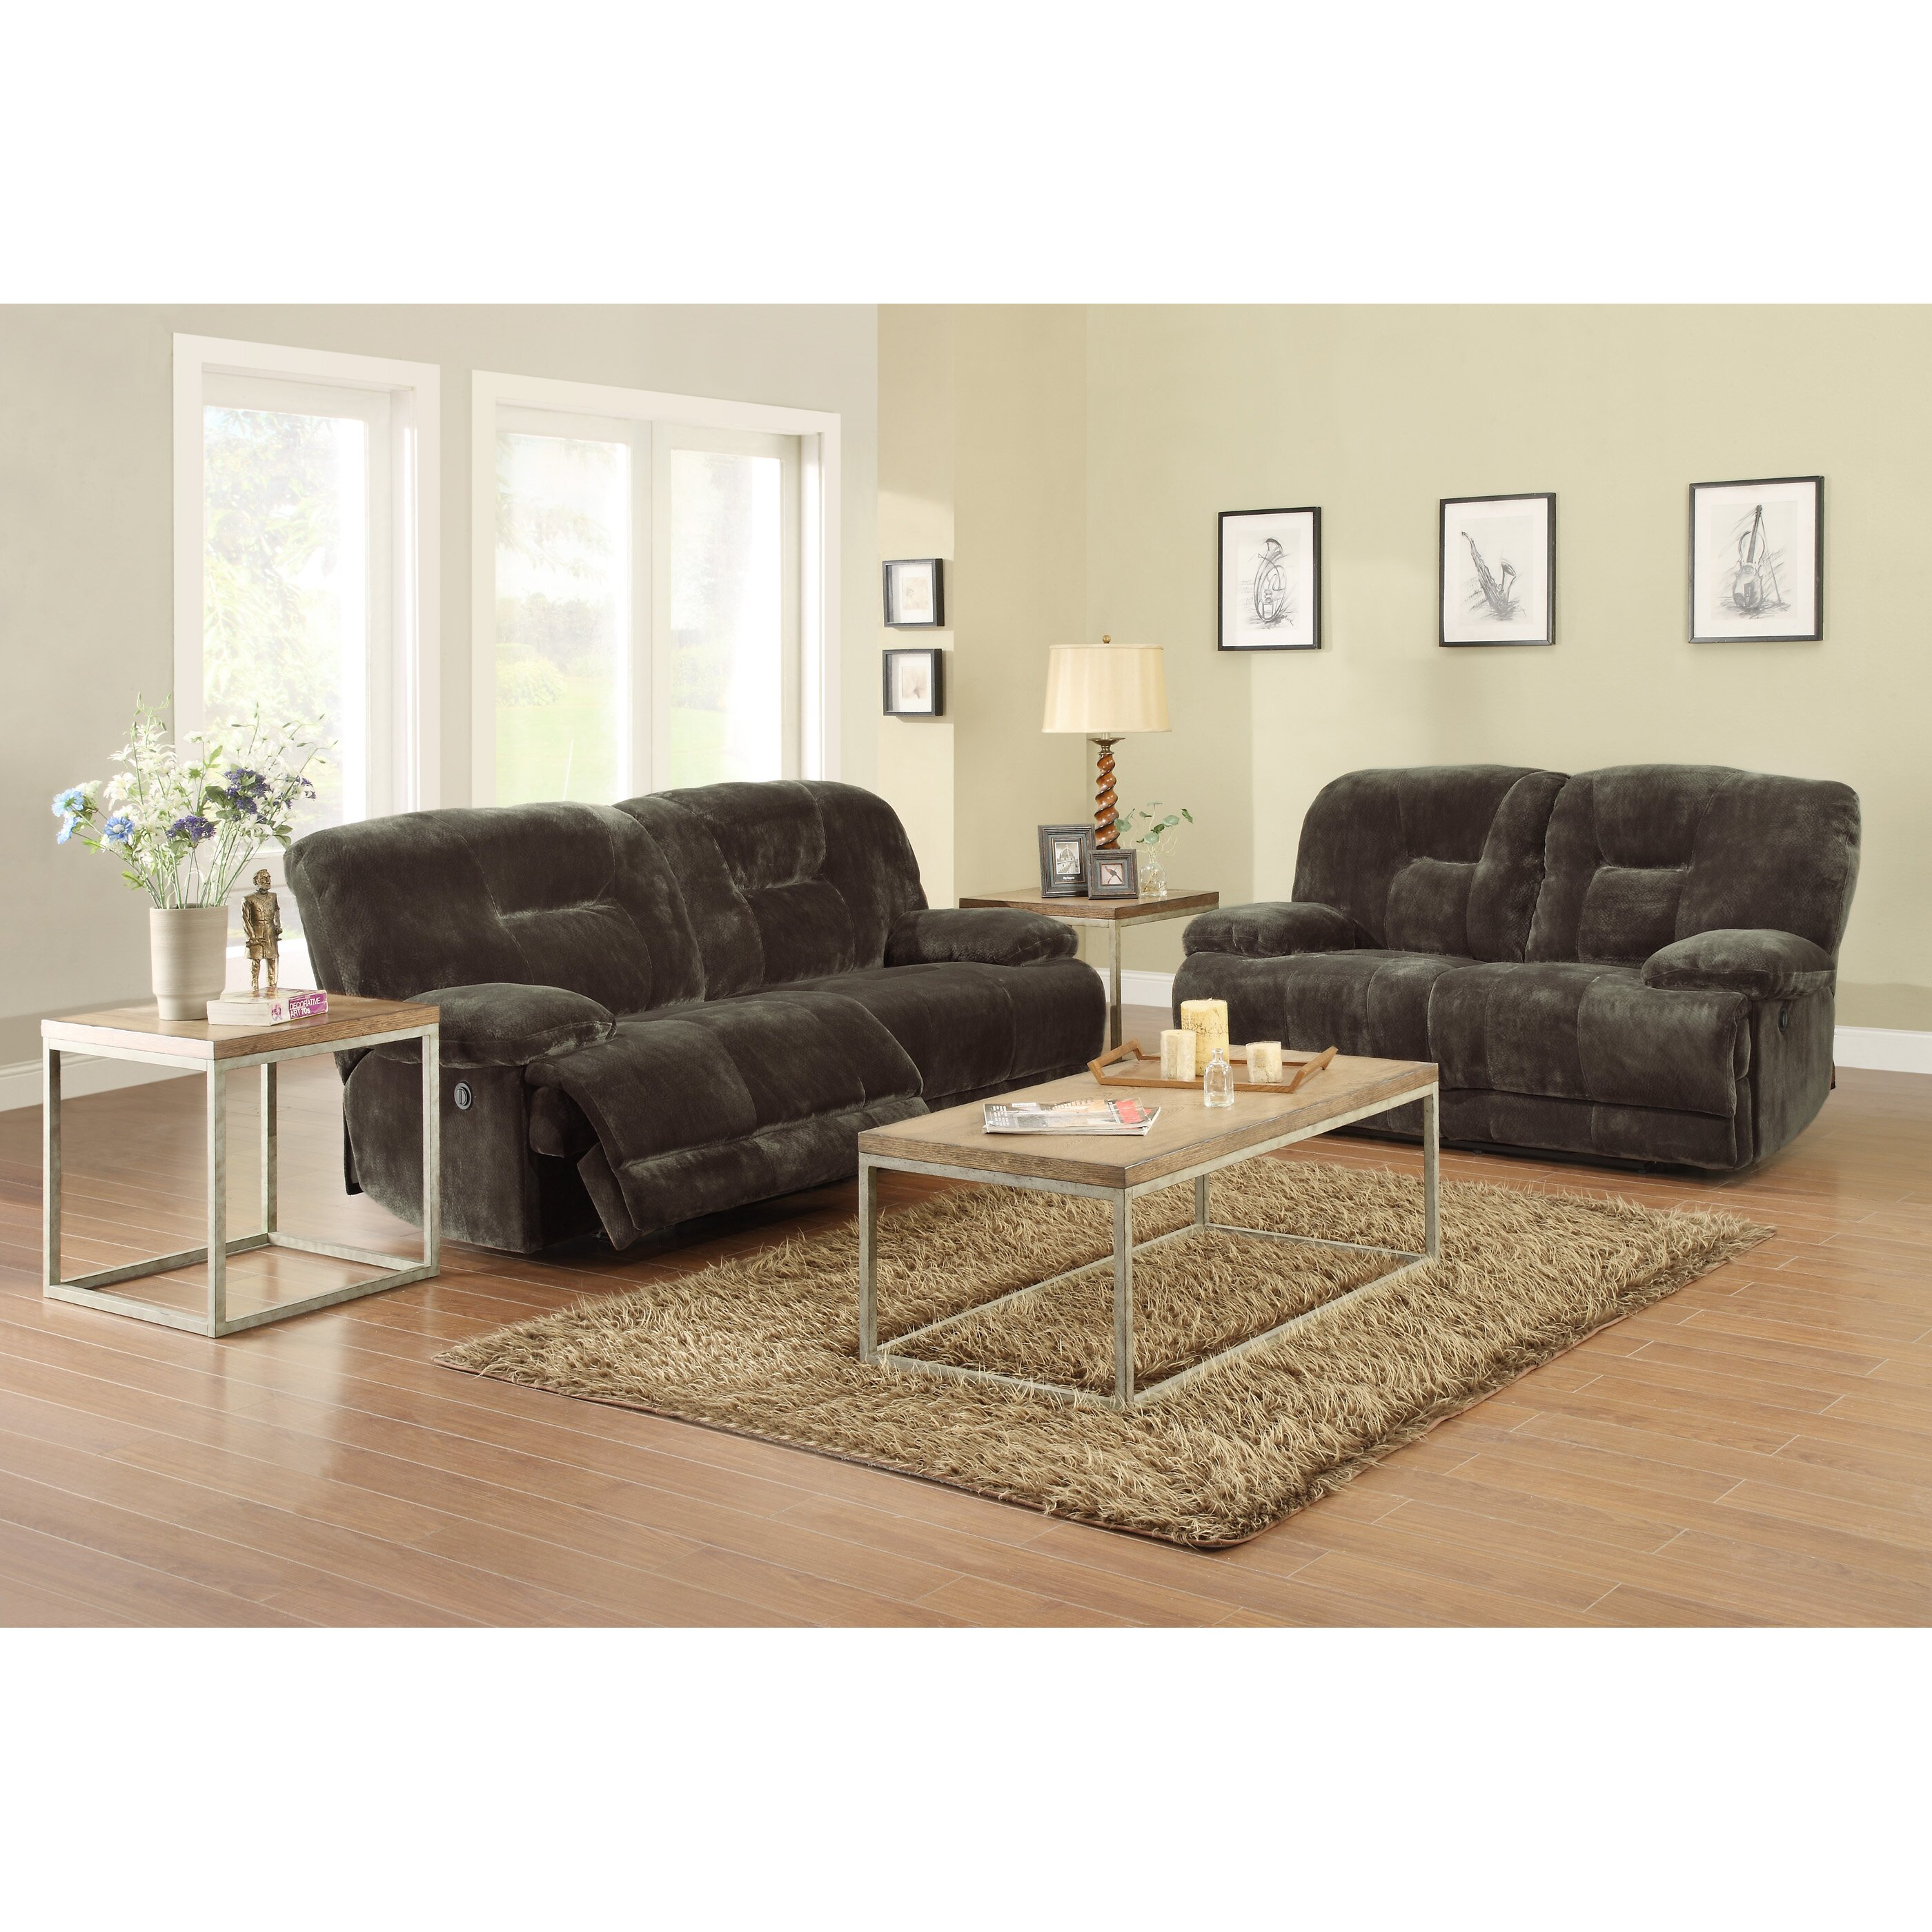 Woodhaven Hill Geoffrey Double Reclining Sofa Reviews Wayfair